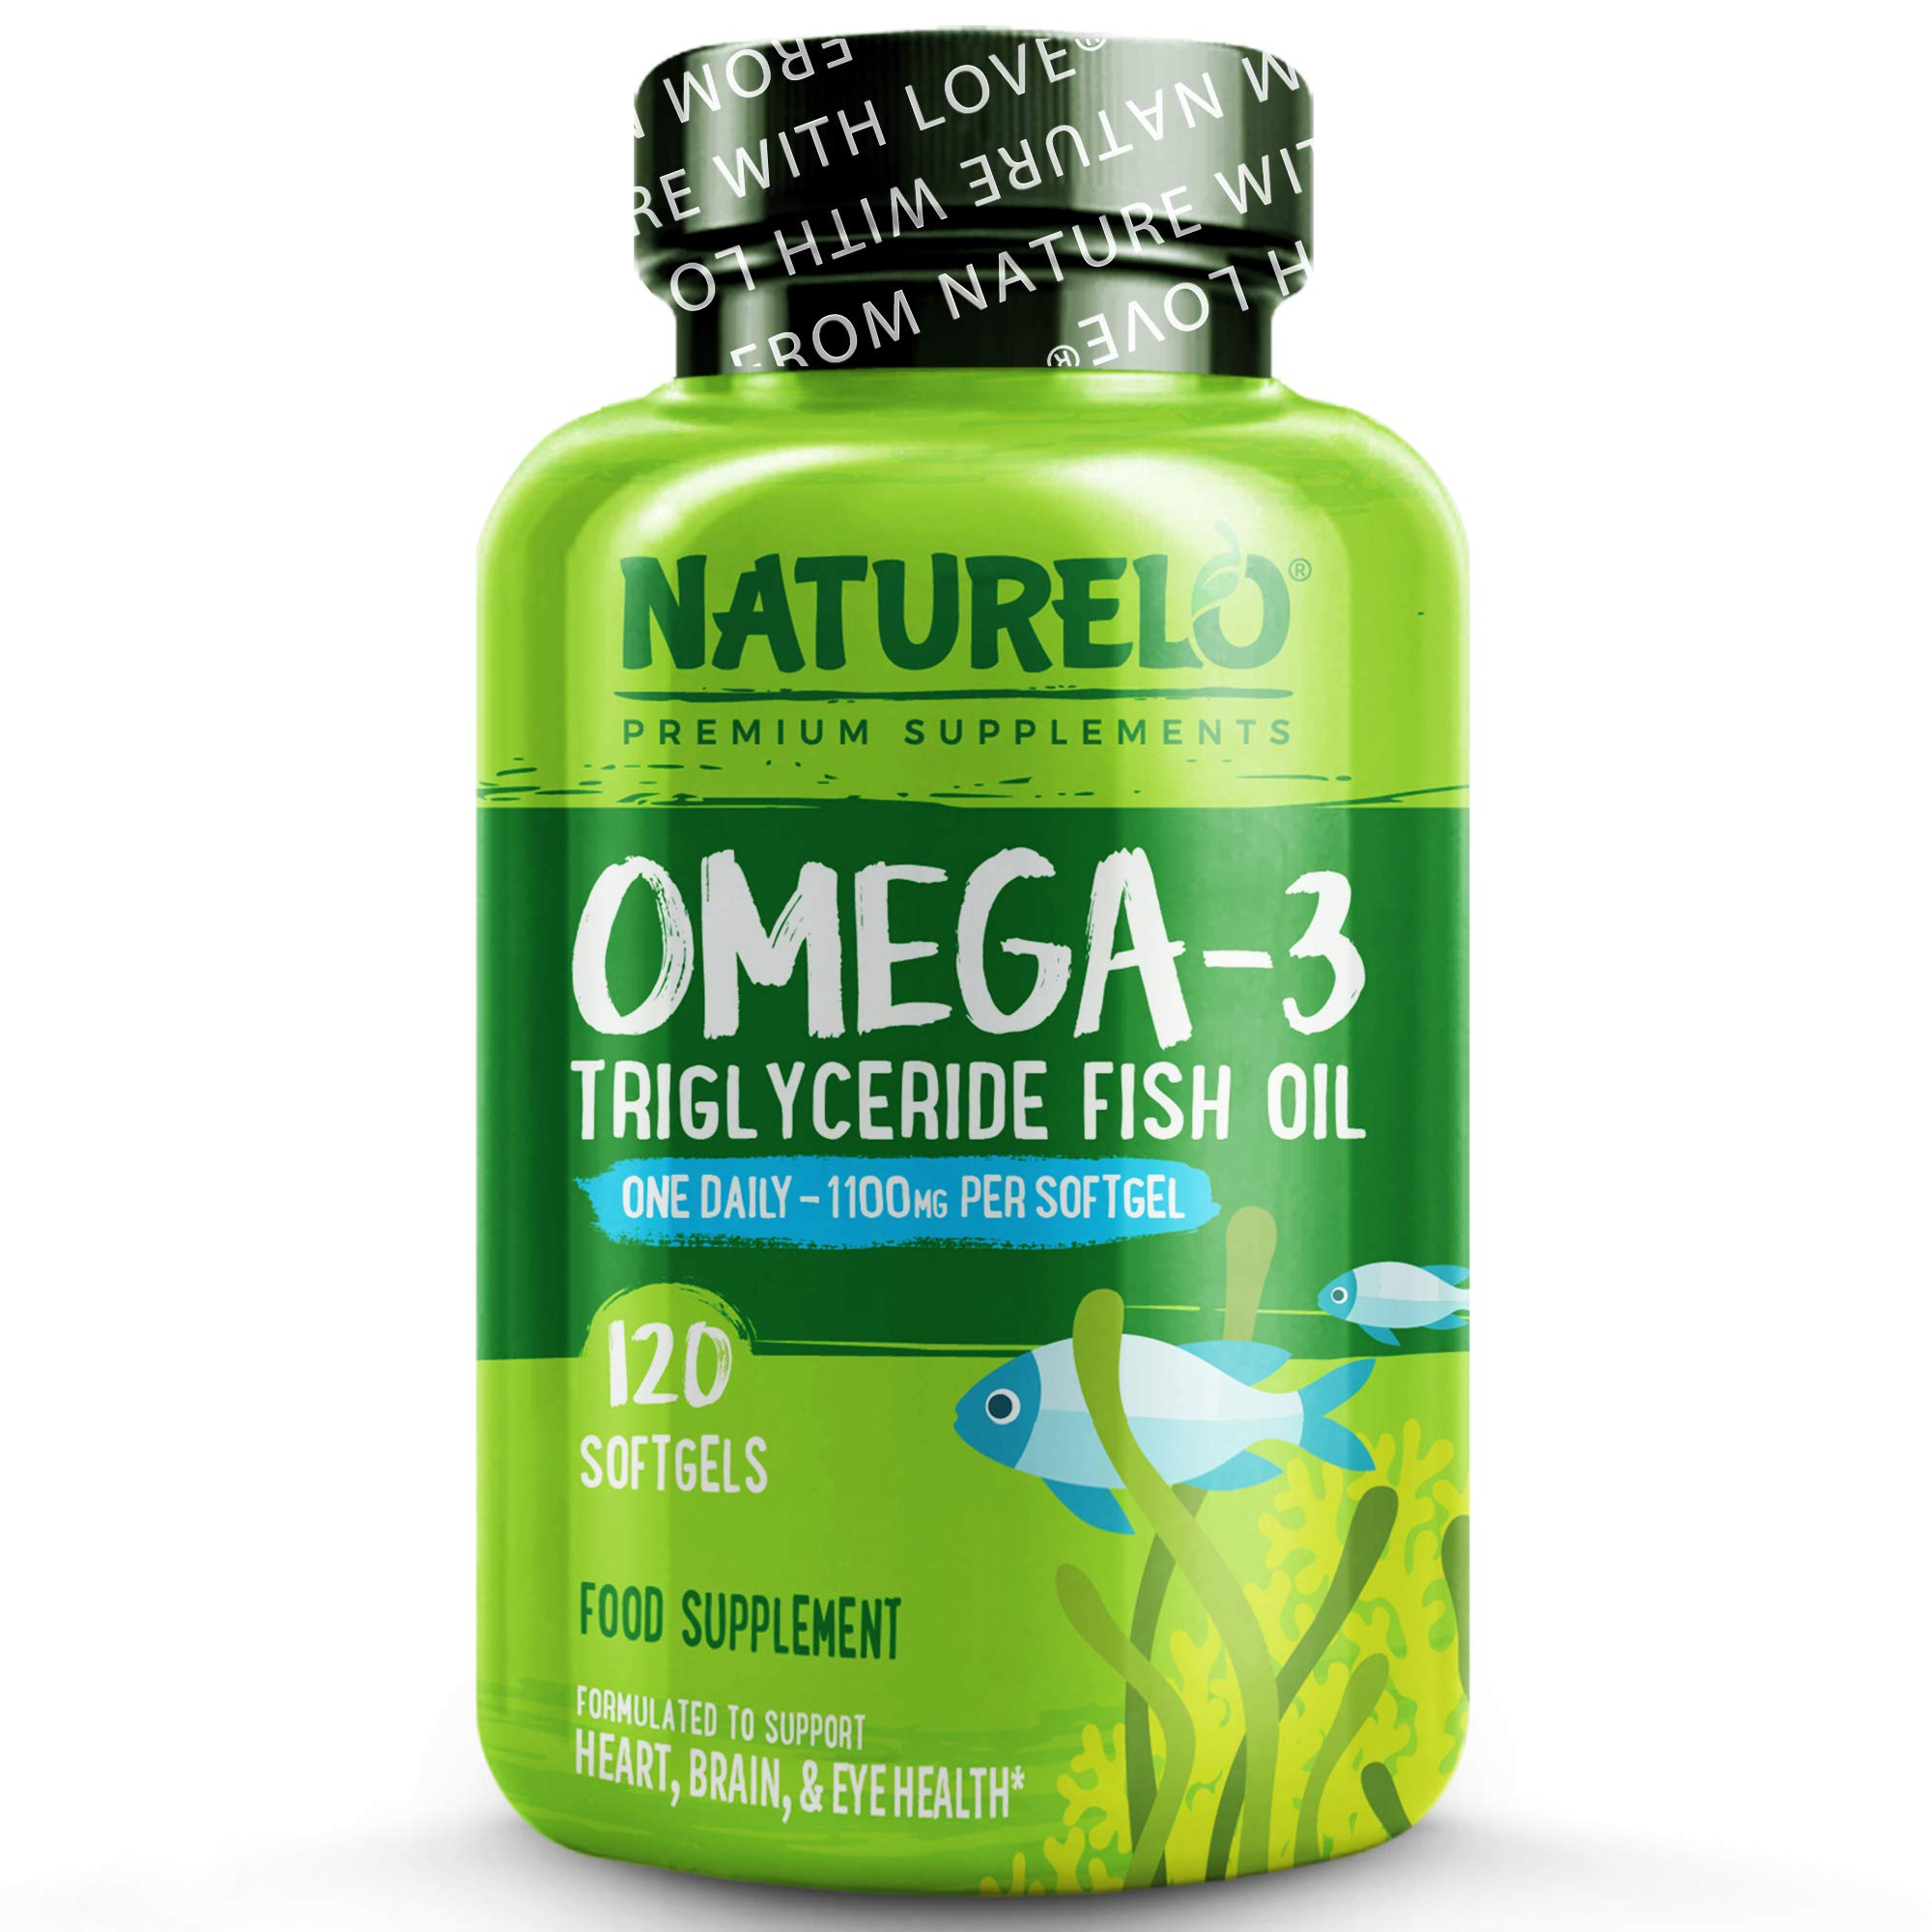 NATURELO Omega-3 Fish Oil - with EPA & DHA - 1100 mg Triglycerides Per Capsule - Best Supplement for Heart, Eye, Brain Health - No Burps - Lemon Flavour - One A Day - 120 Softgels | 4 Month Supply